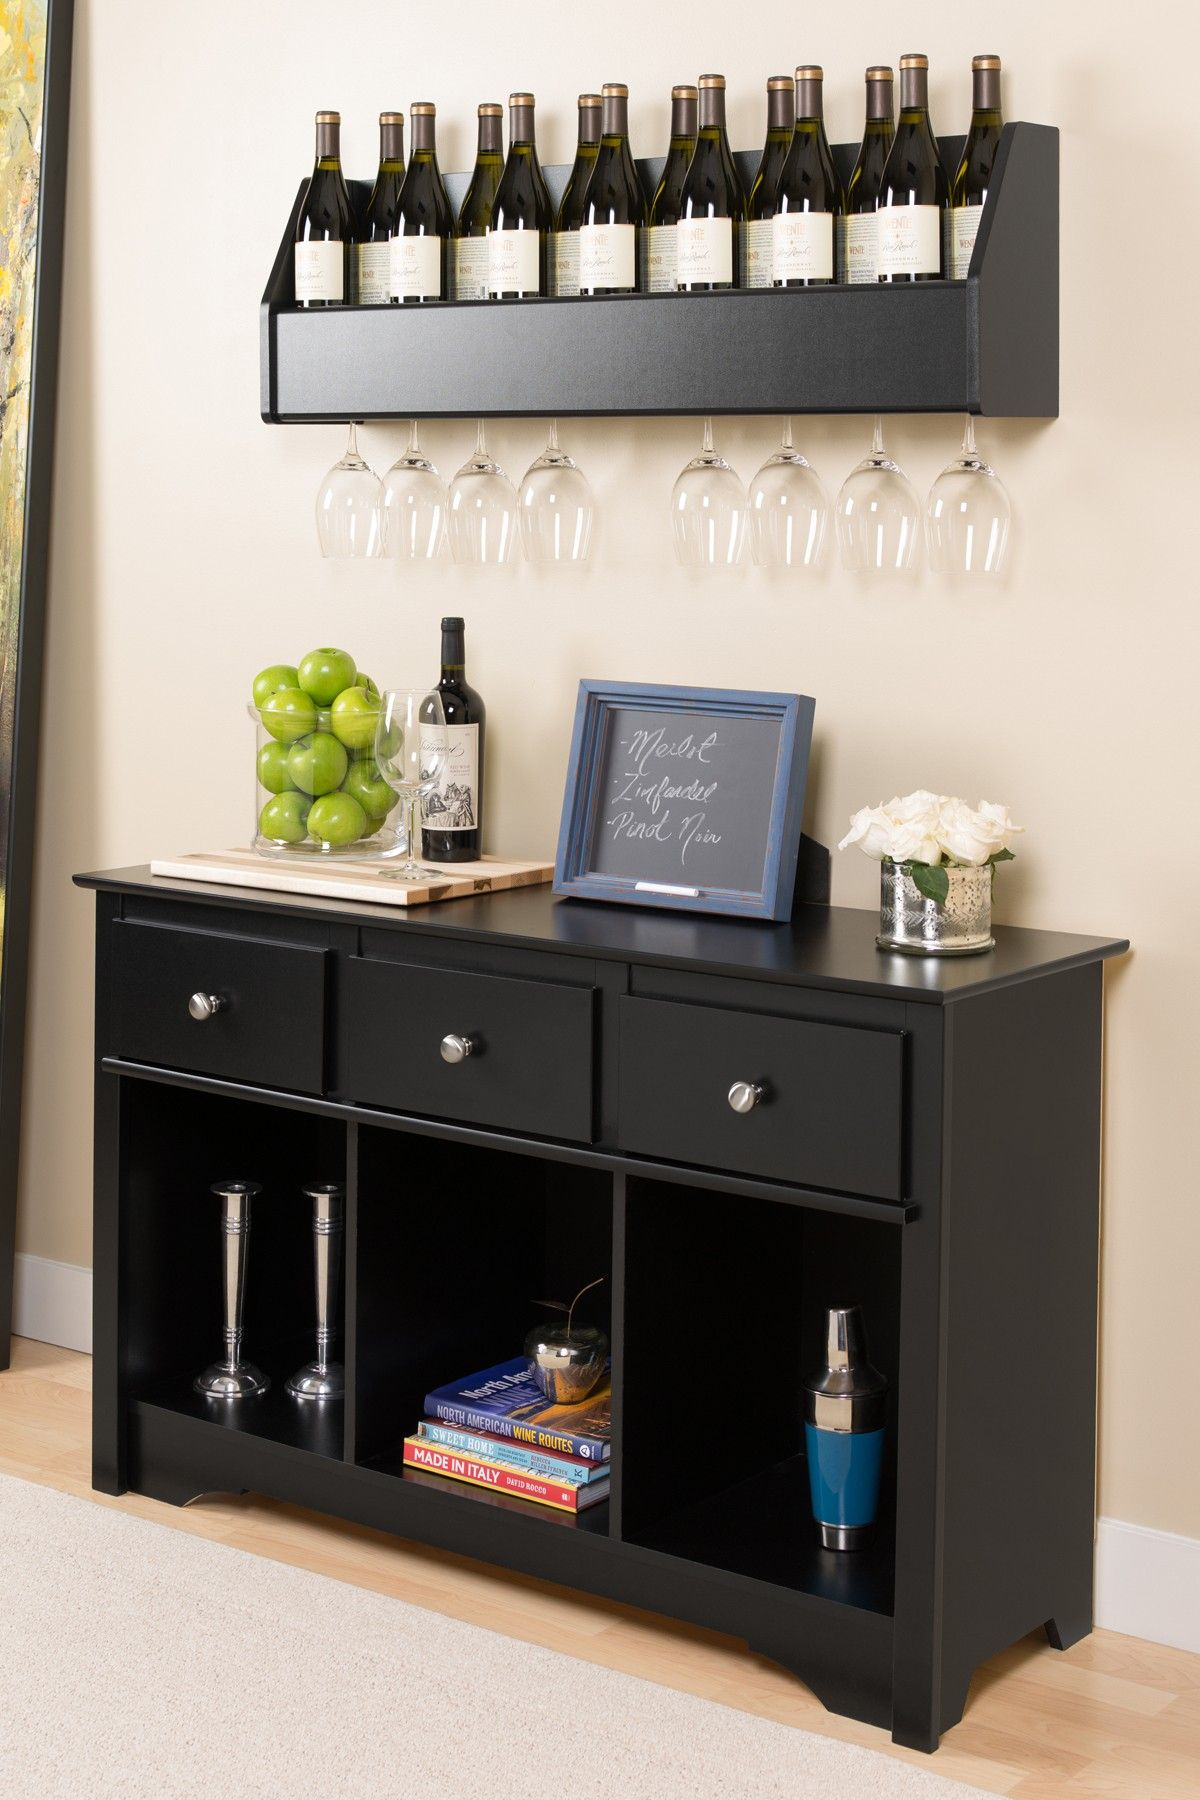 I Like The Clean Organization And Layout On Top Of Cabinet Great For Small Es Apartment If In Need A Mini Bar Buffet Table